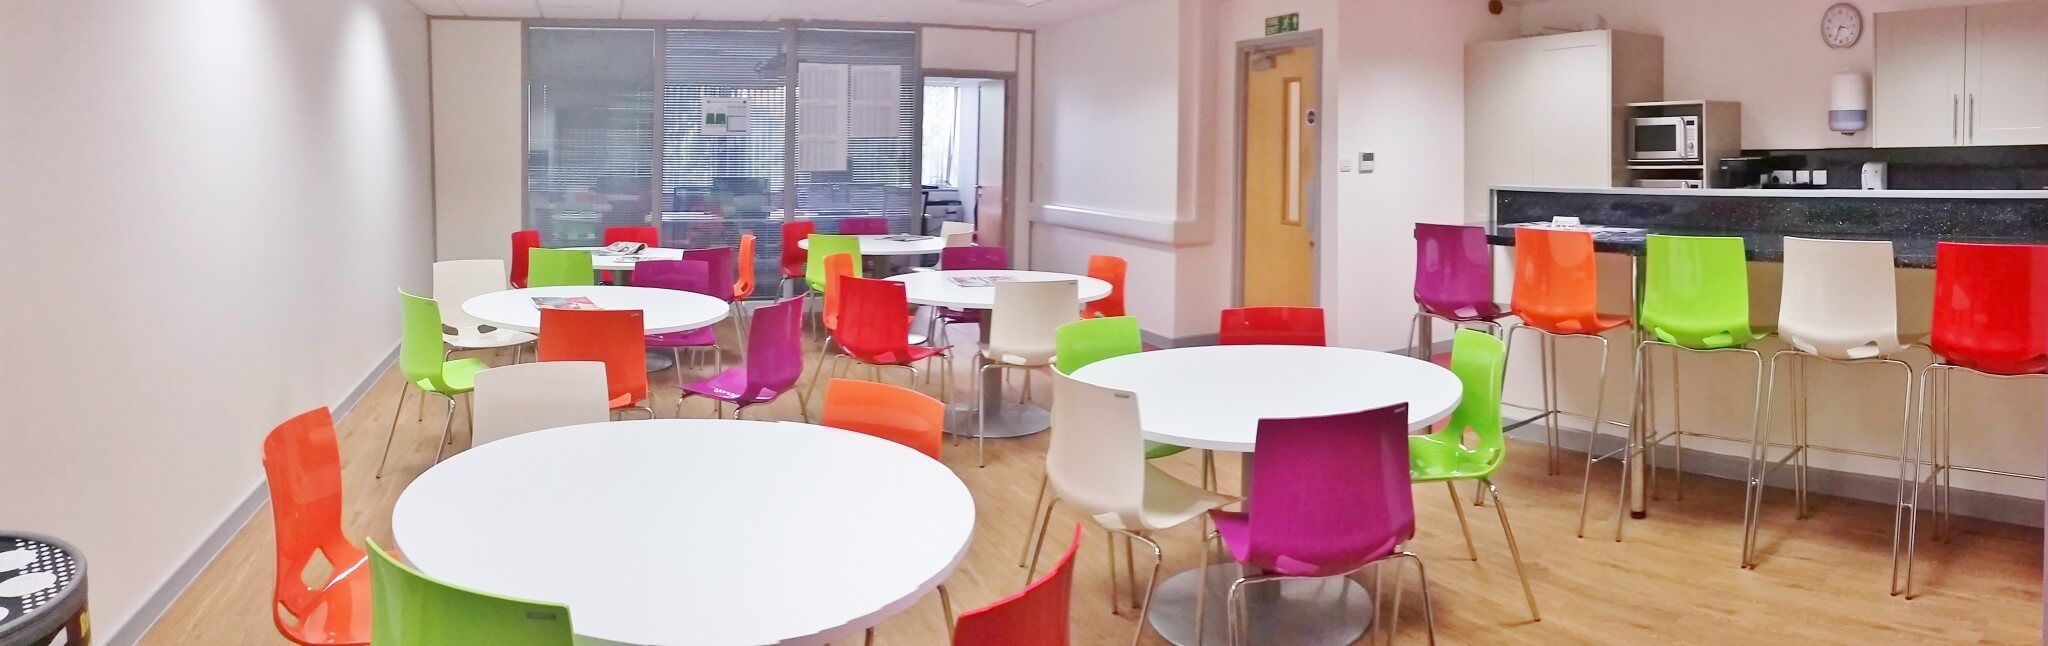 Canteen Refurbishment - Ely, Cambridgeshire